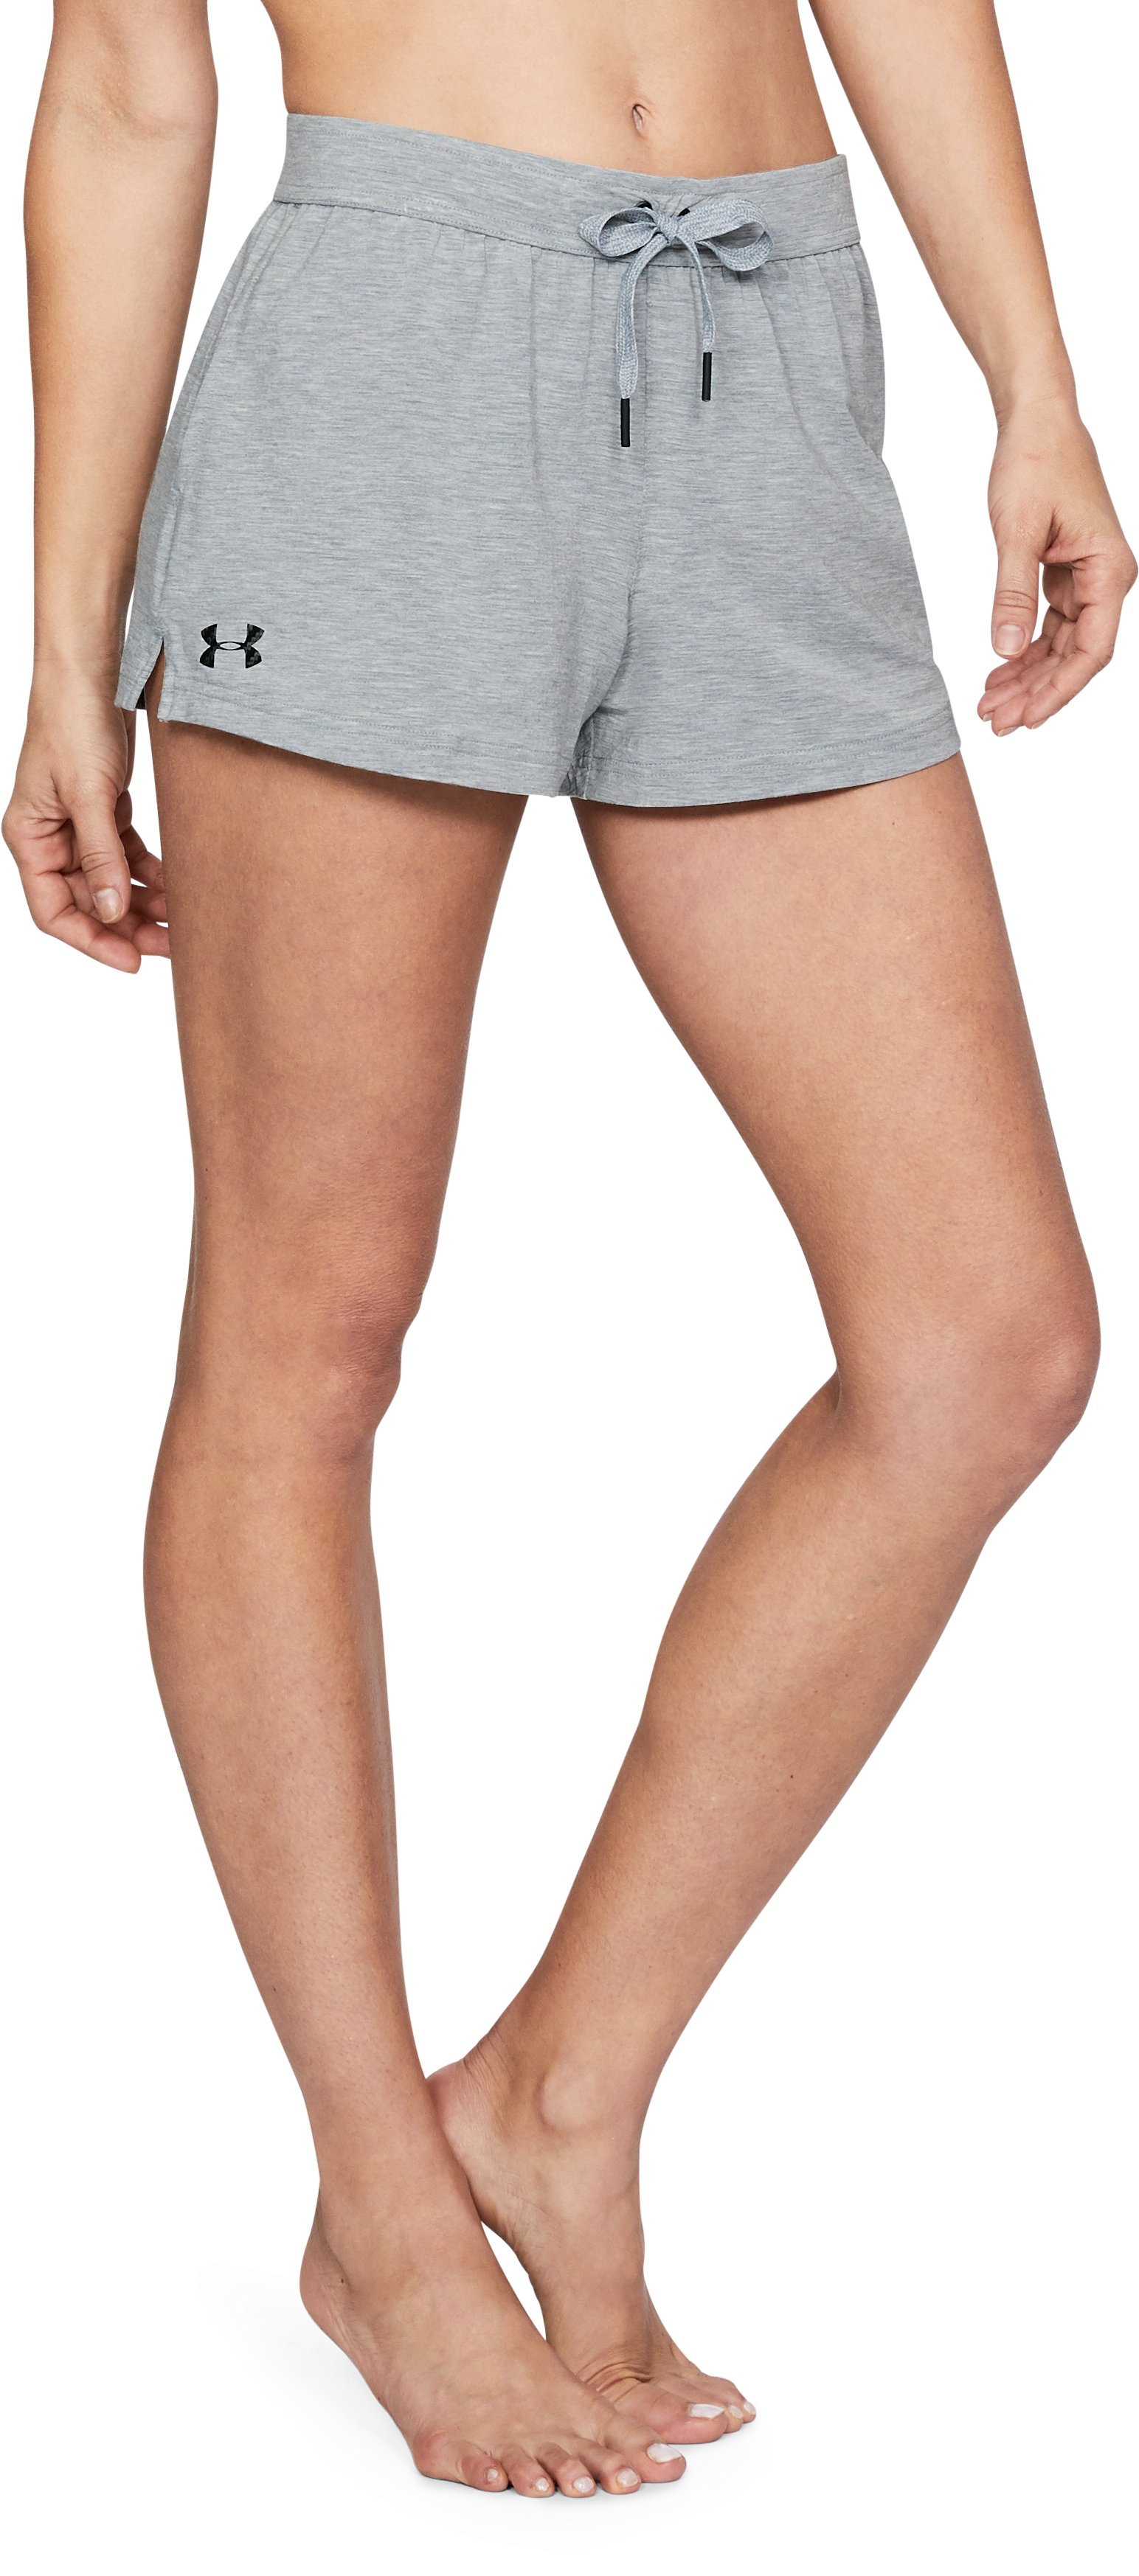 Women's Athlete Recovery Ultra Comfort Sleepwear Shorts, True Gray Heather,